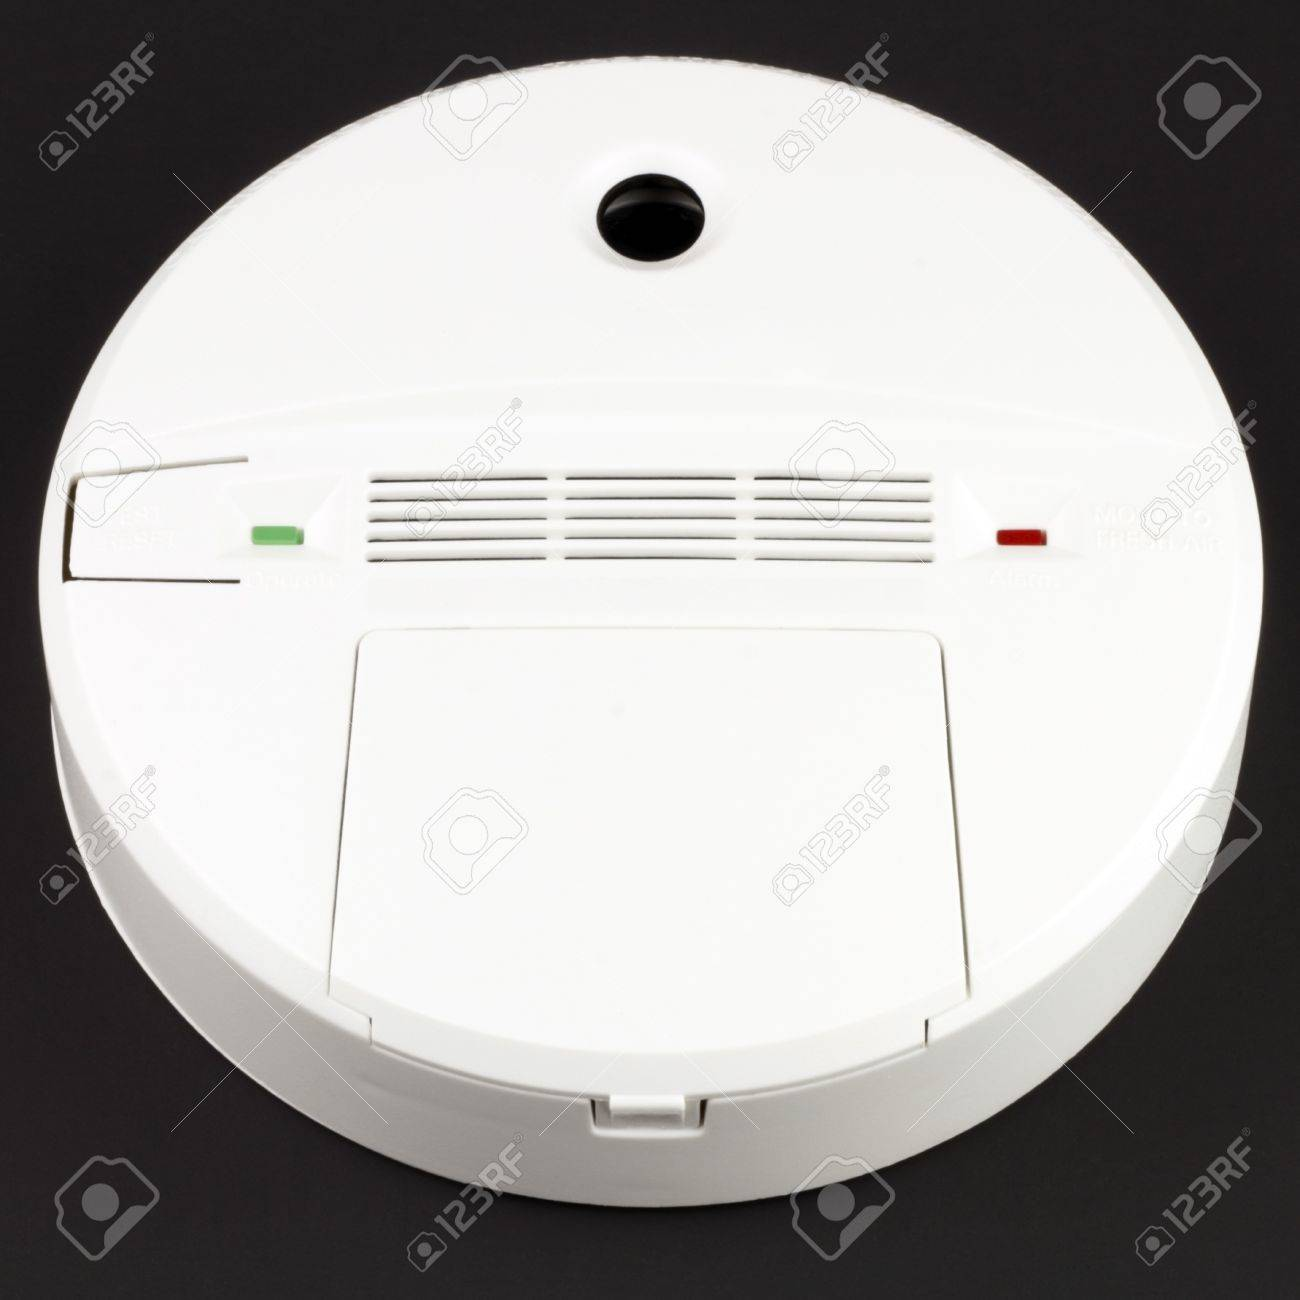 Battery powered alarm device to warn against dangerous CO buildup in indoor environments on black background. Stock Photo - 9087481